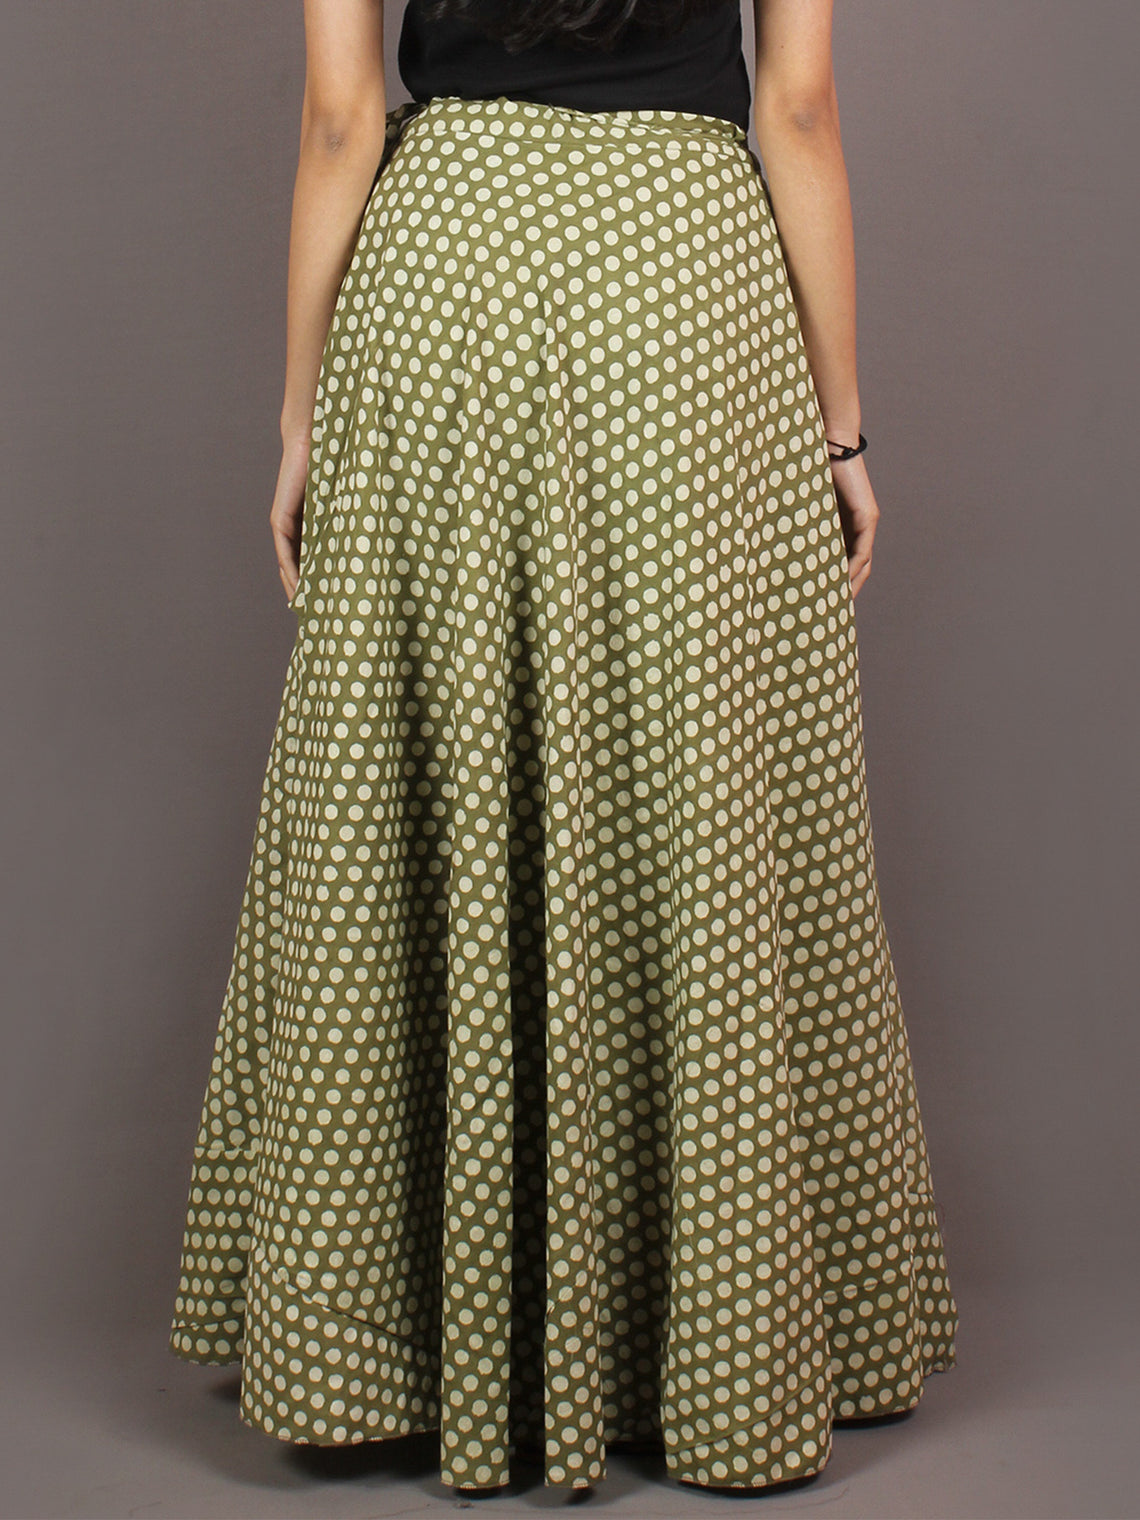 Hand Block Printed Wrap Around Skirt In Green White - S401006